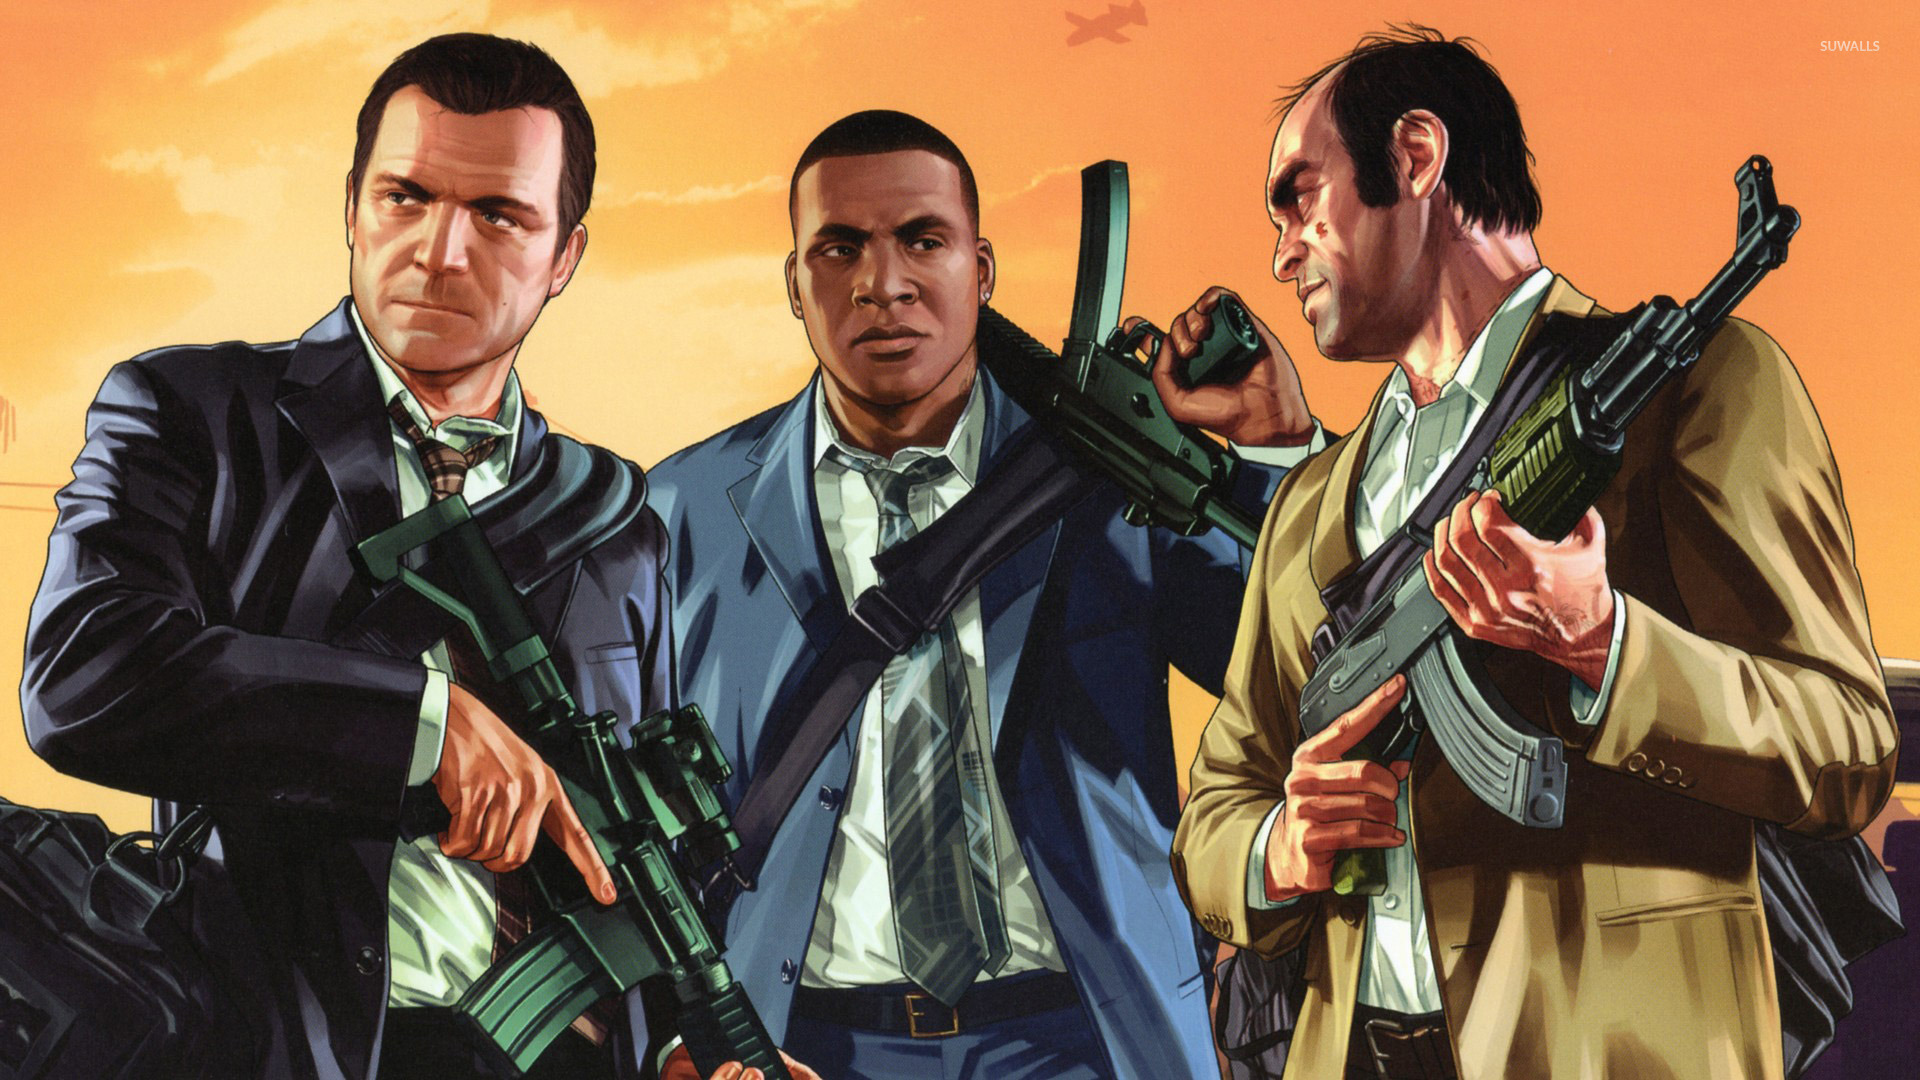 Grand Theft Auto V 10 Wallpaper Game Wallpapers 31035